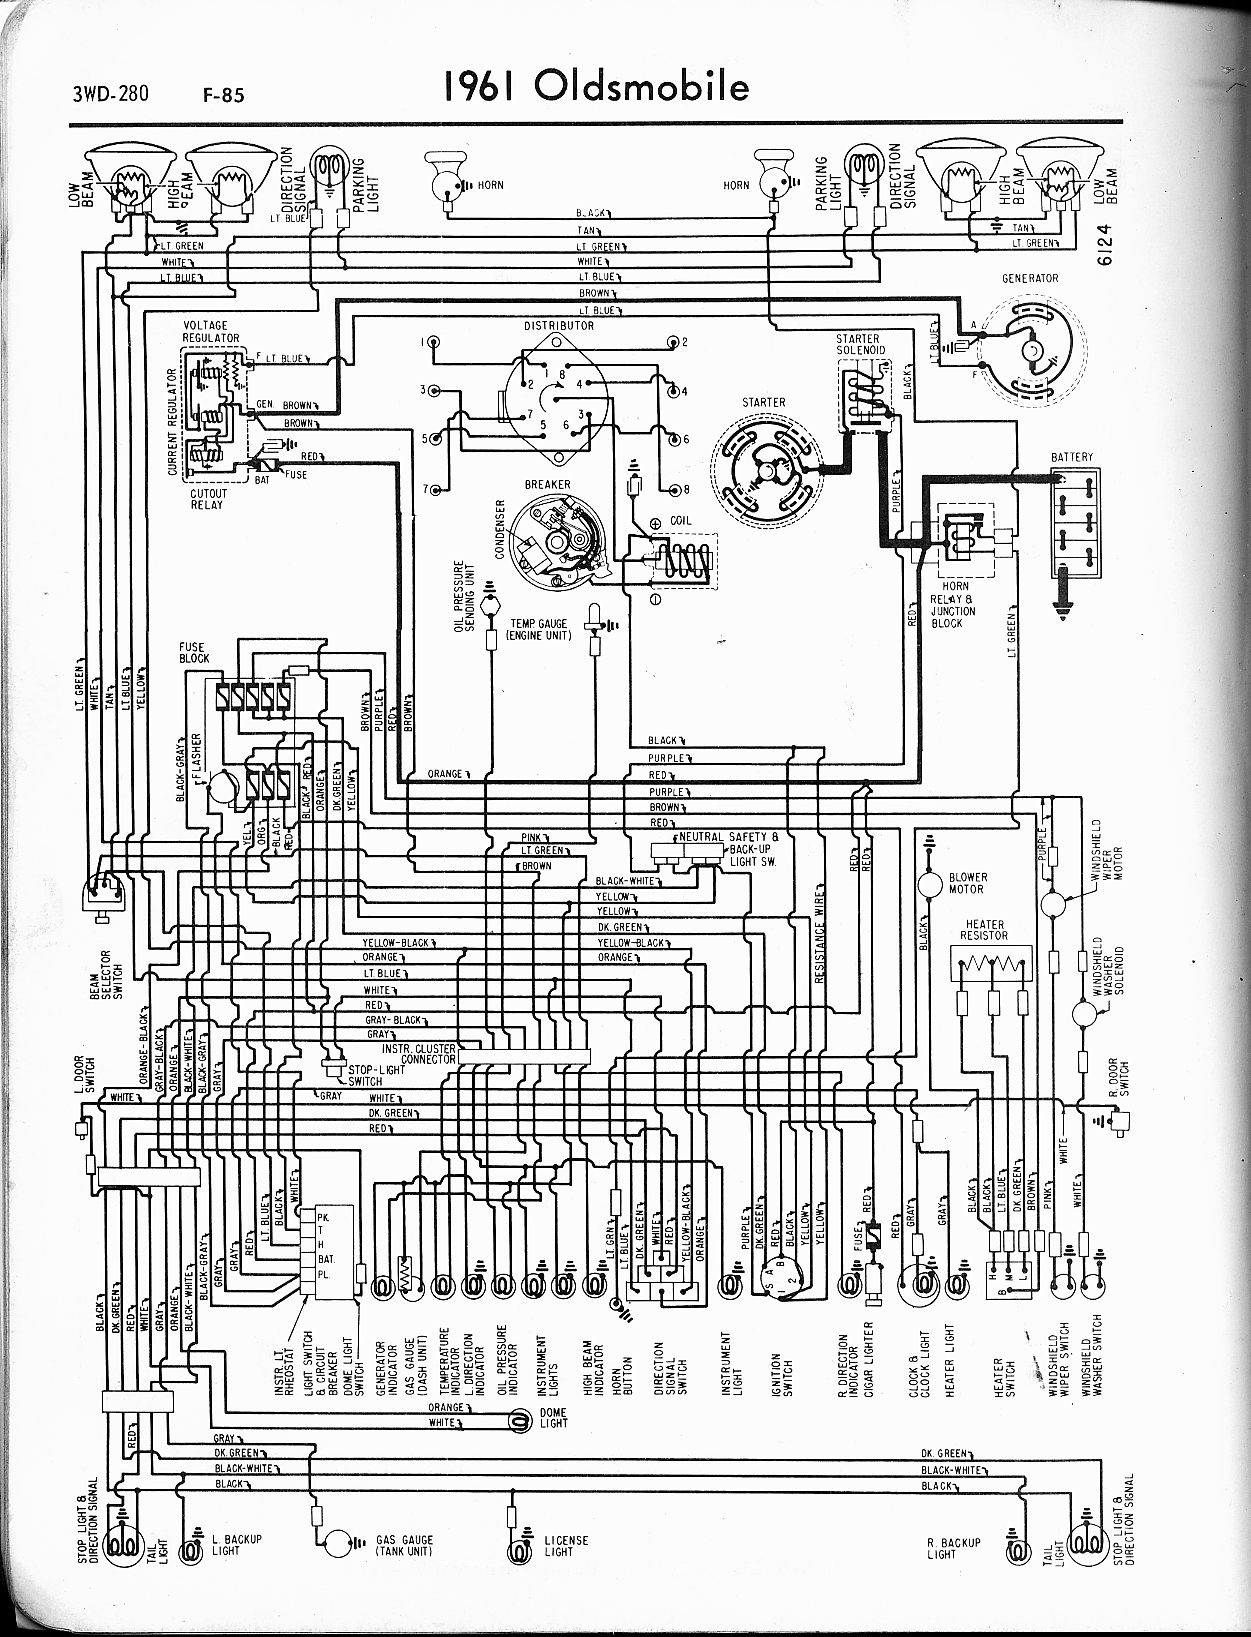 MWire5765 280 oldsmobile wiring diagrams the old car manual project Oldsmobile Aurora Power Steering Line at crackthecode.co